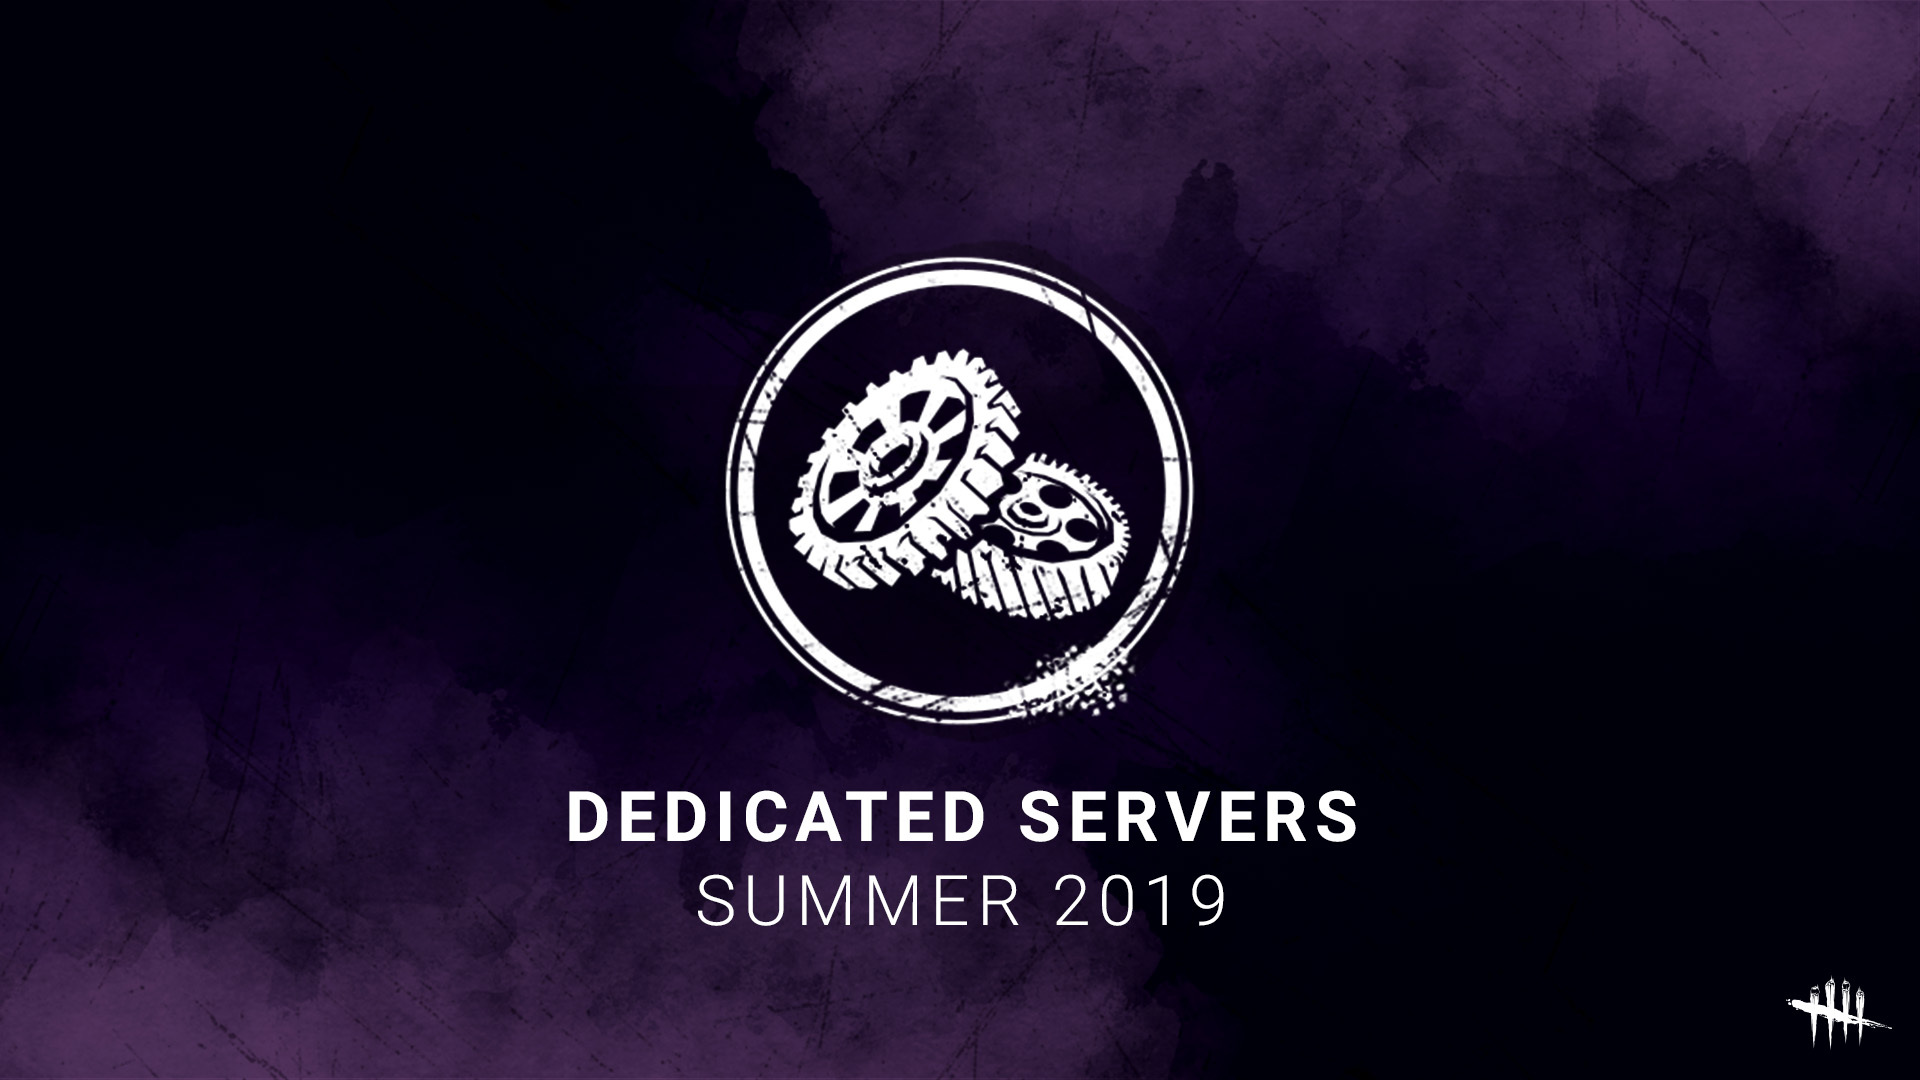 Dedicated server dbd s m